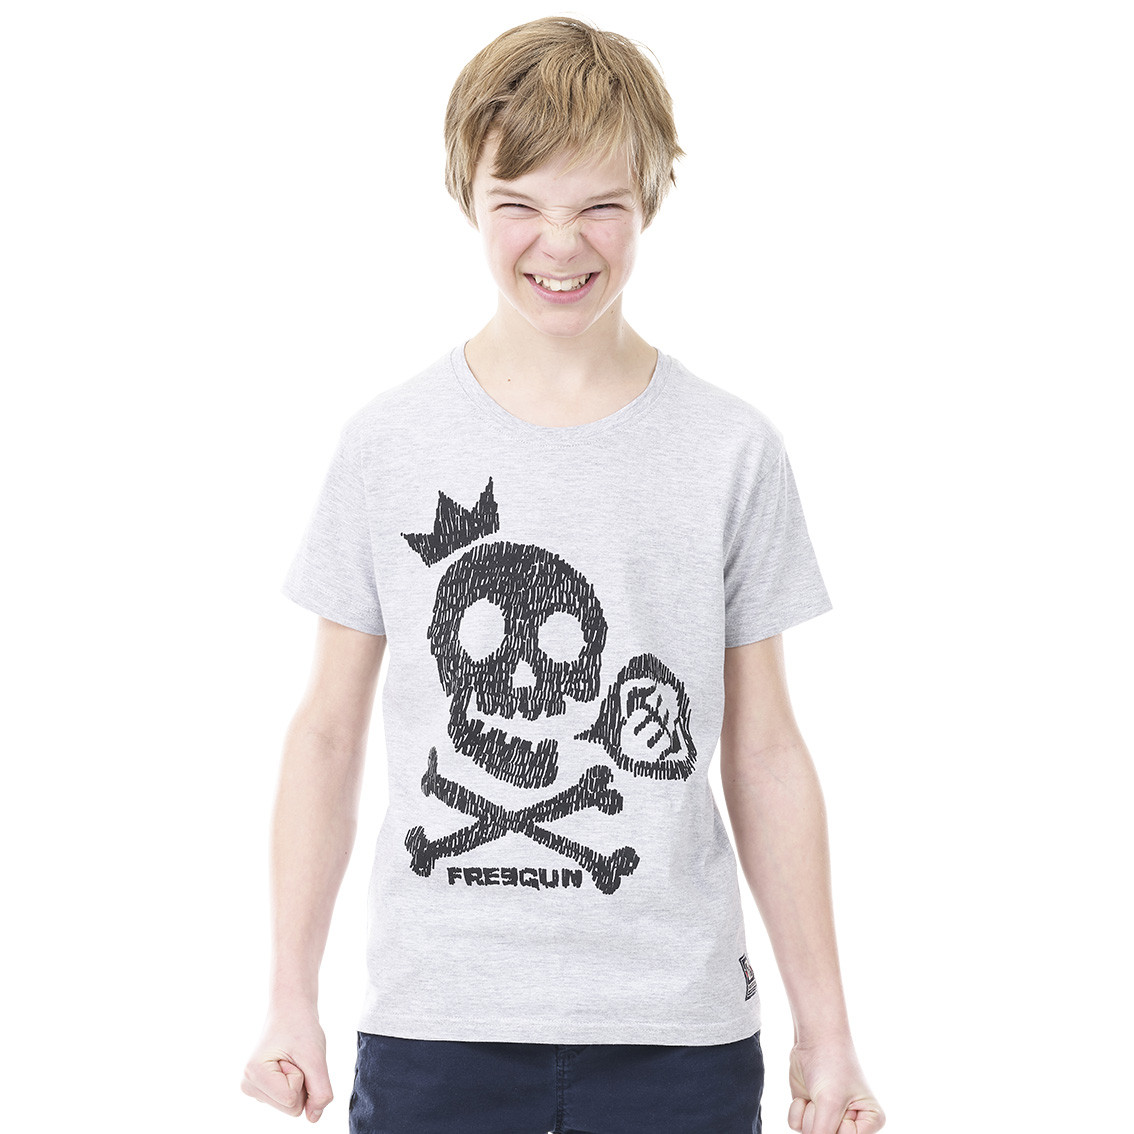 T-shirt freegun skull gris et noir (photo)